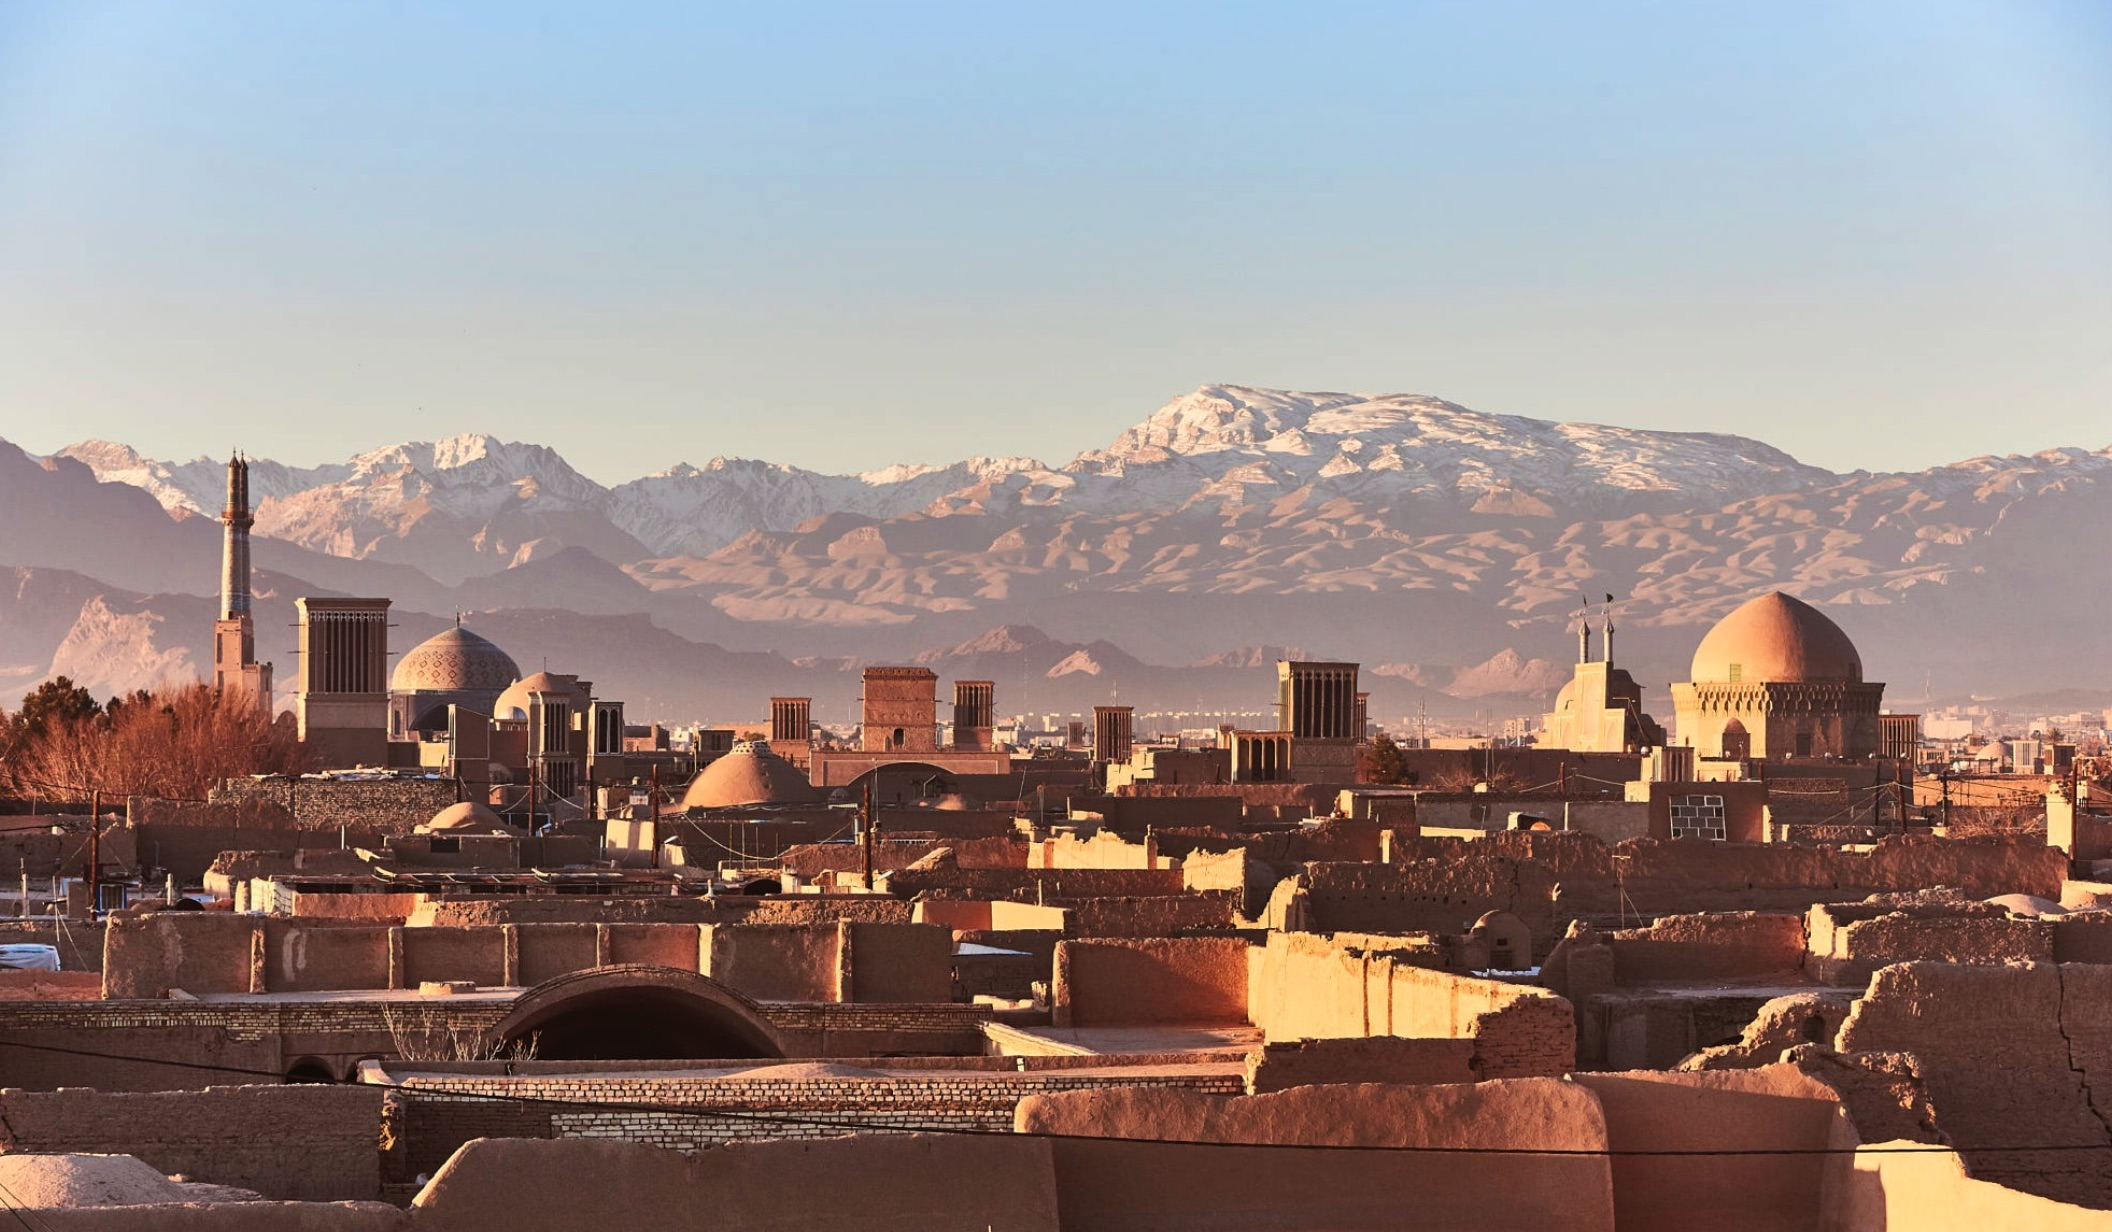 yazd view with badgers and wind towers pictures